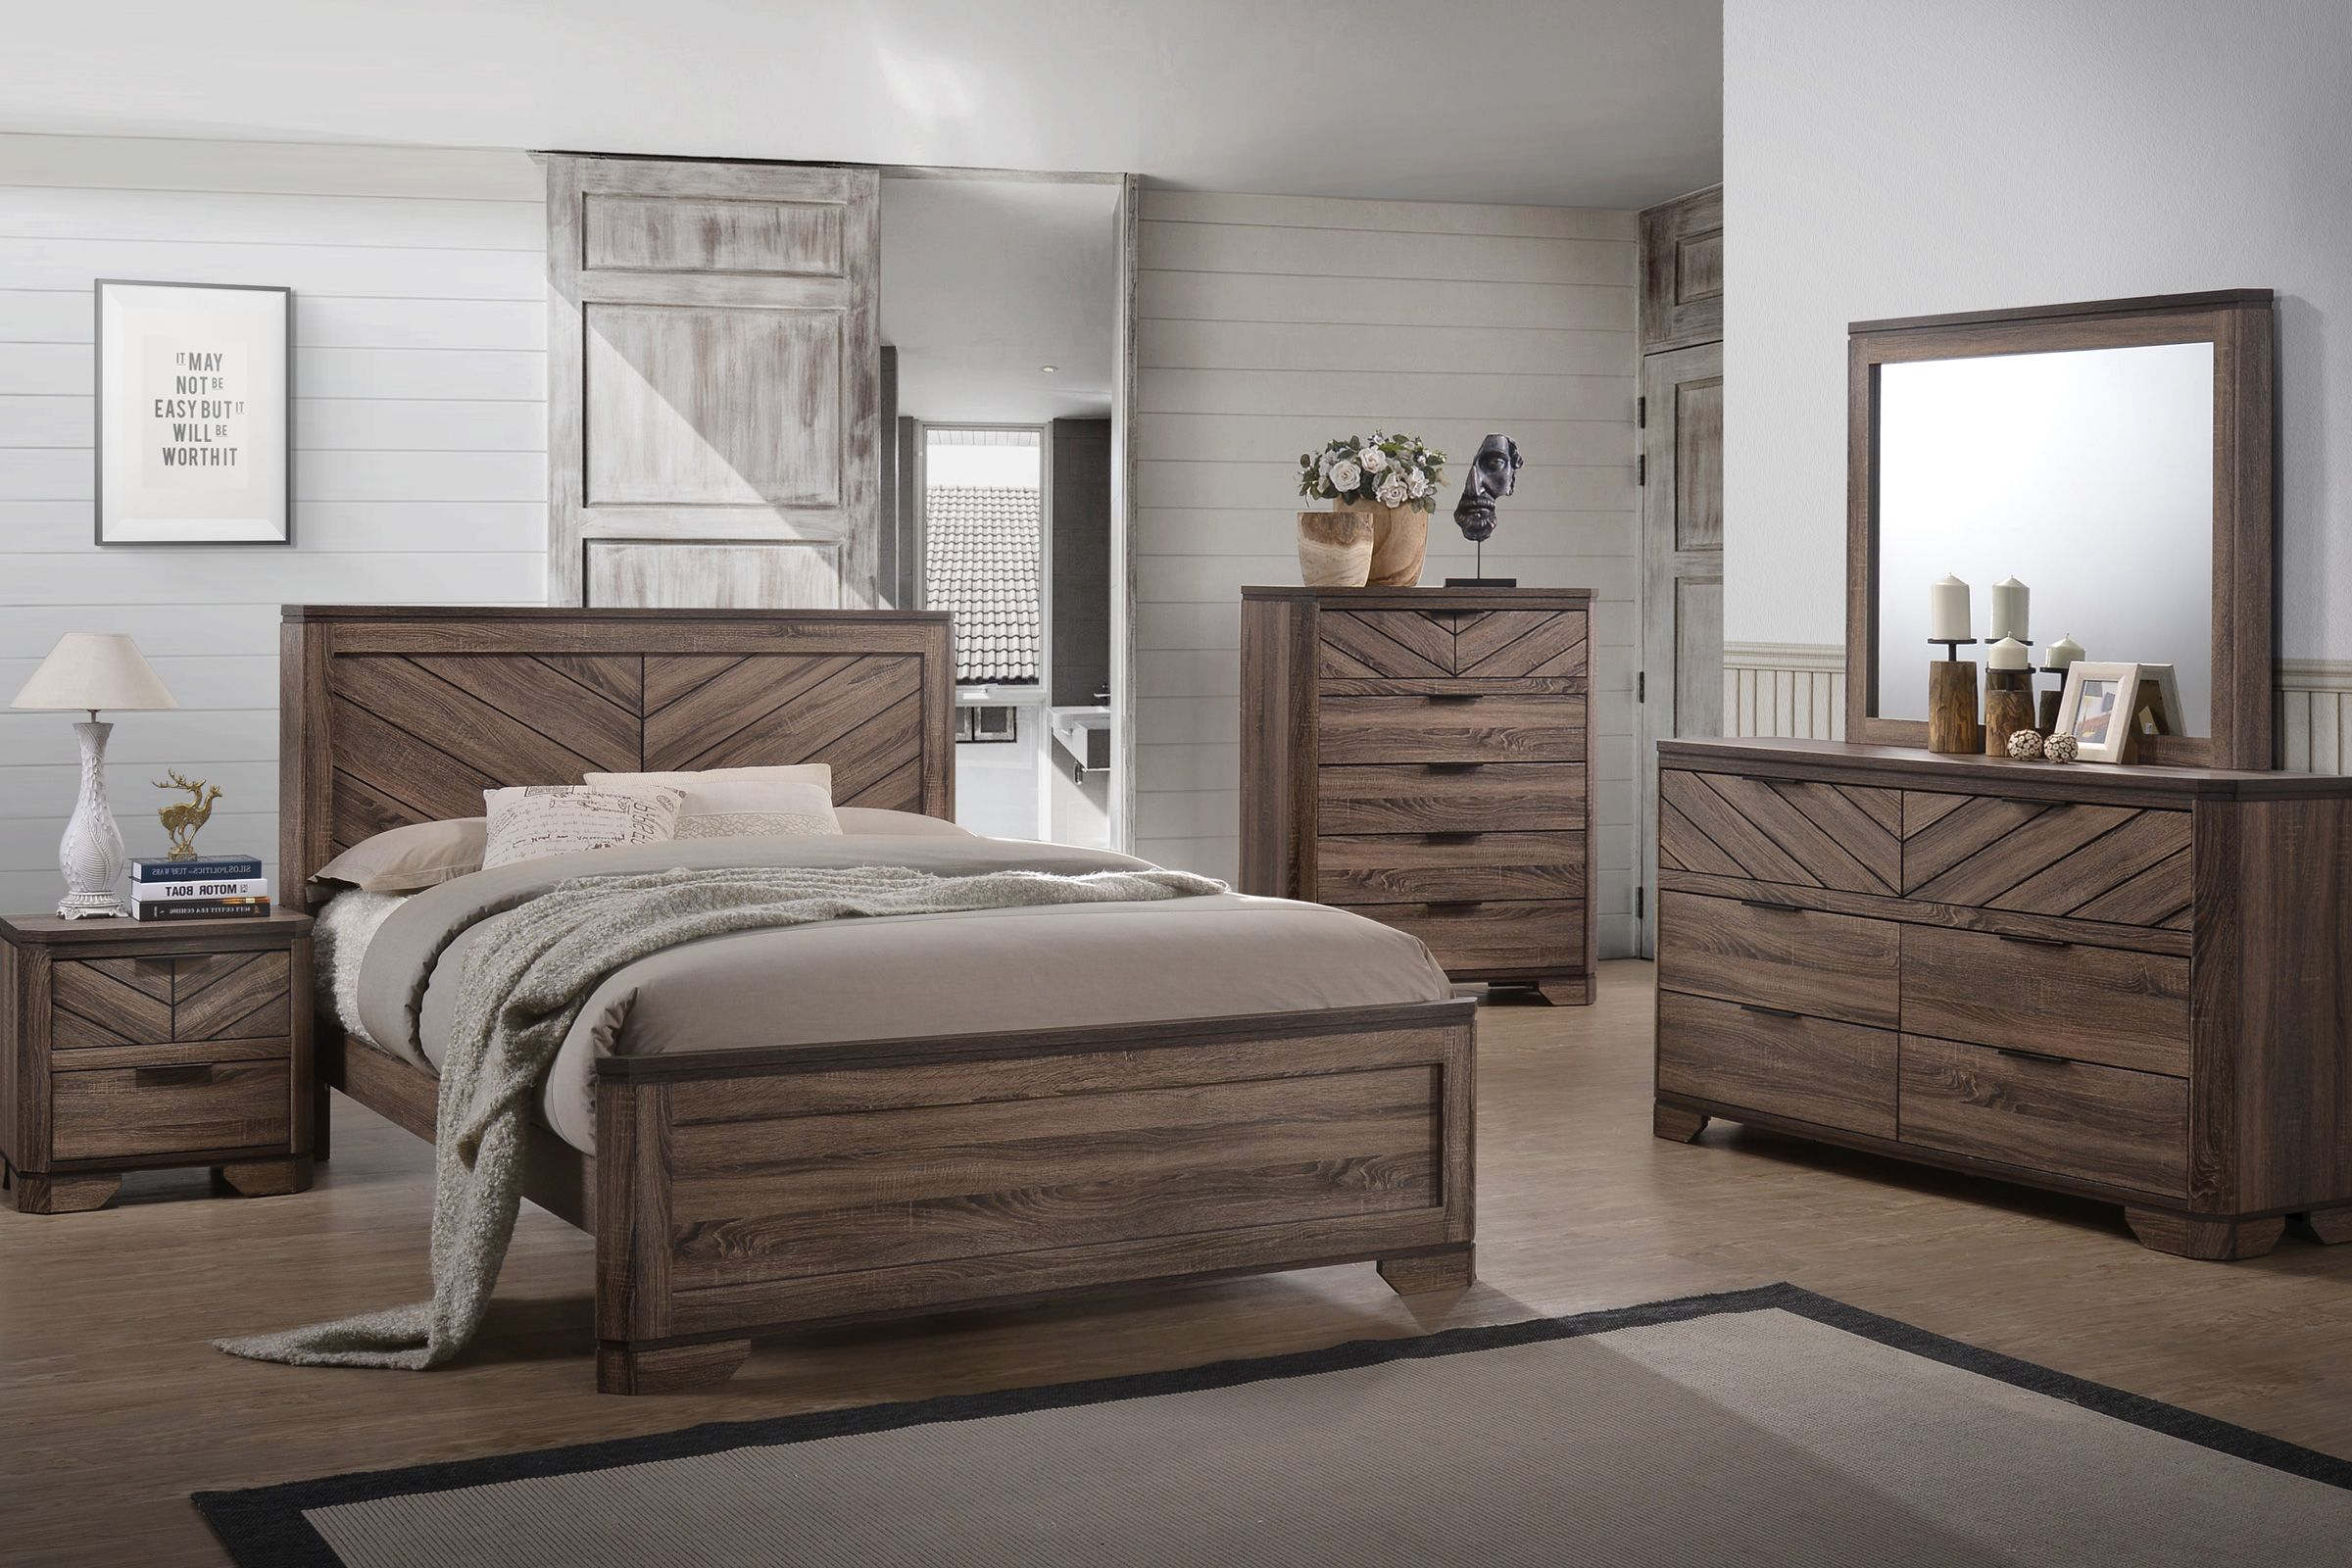 seaburg bedroom collection